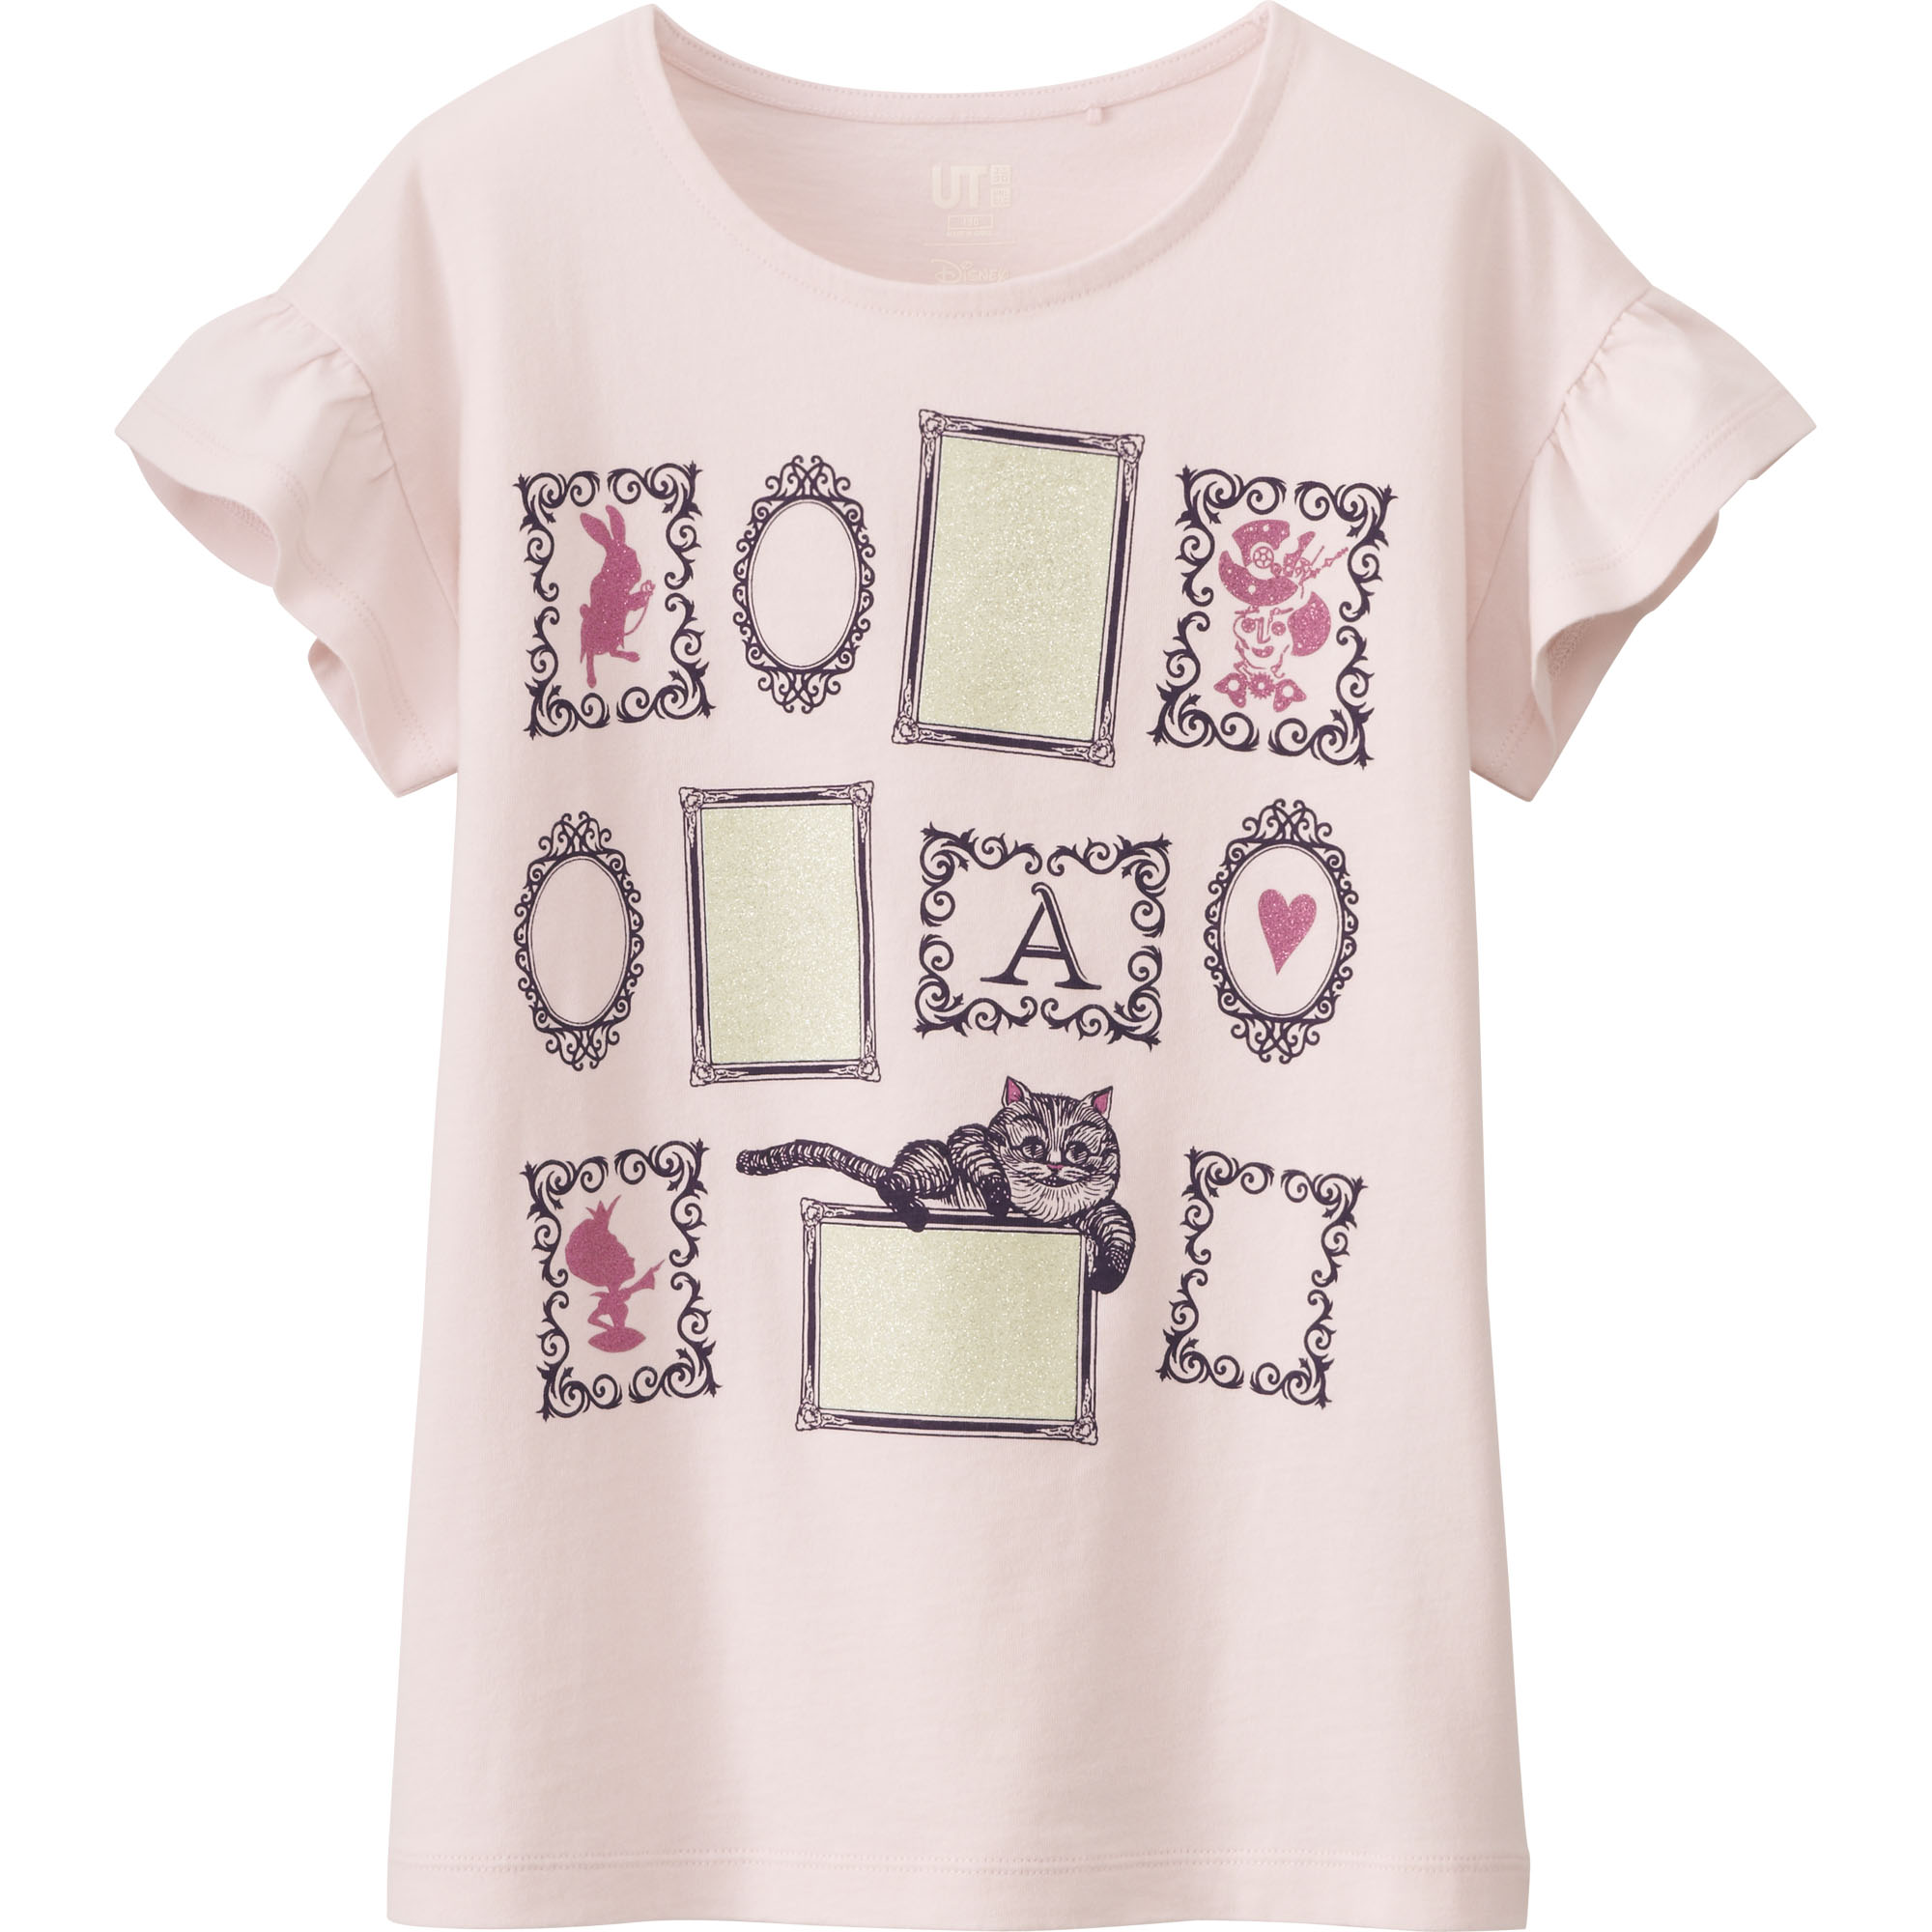 Girls' Alice In Wonderland Graphic T-shirt